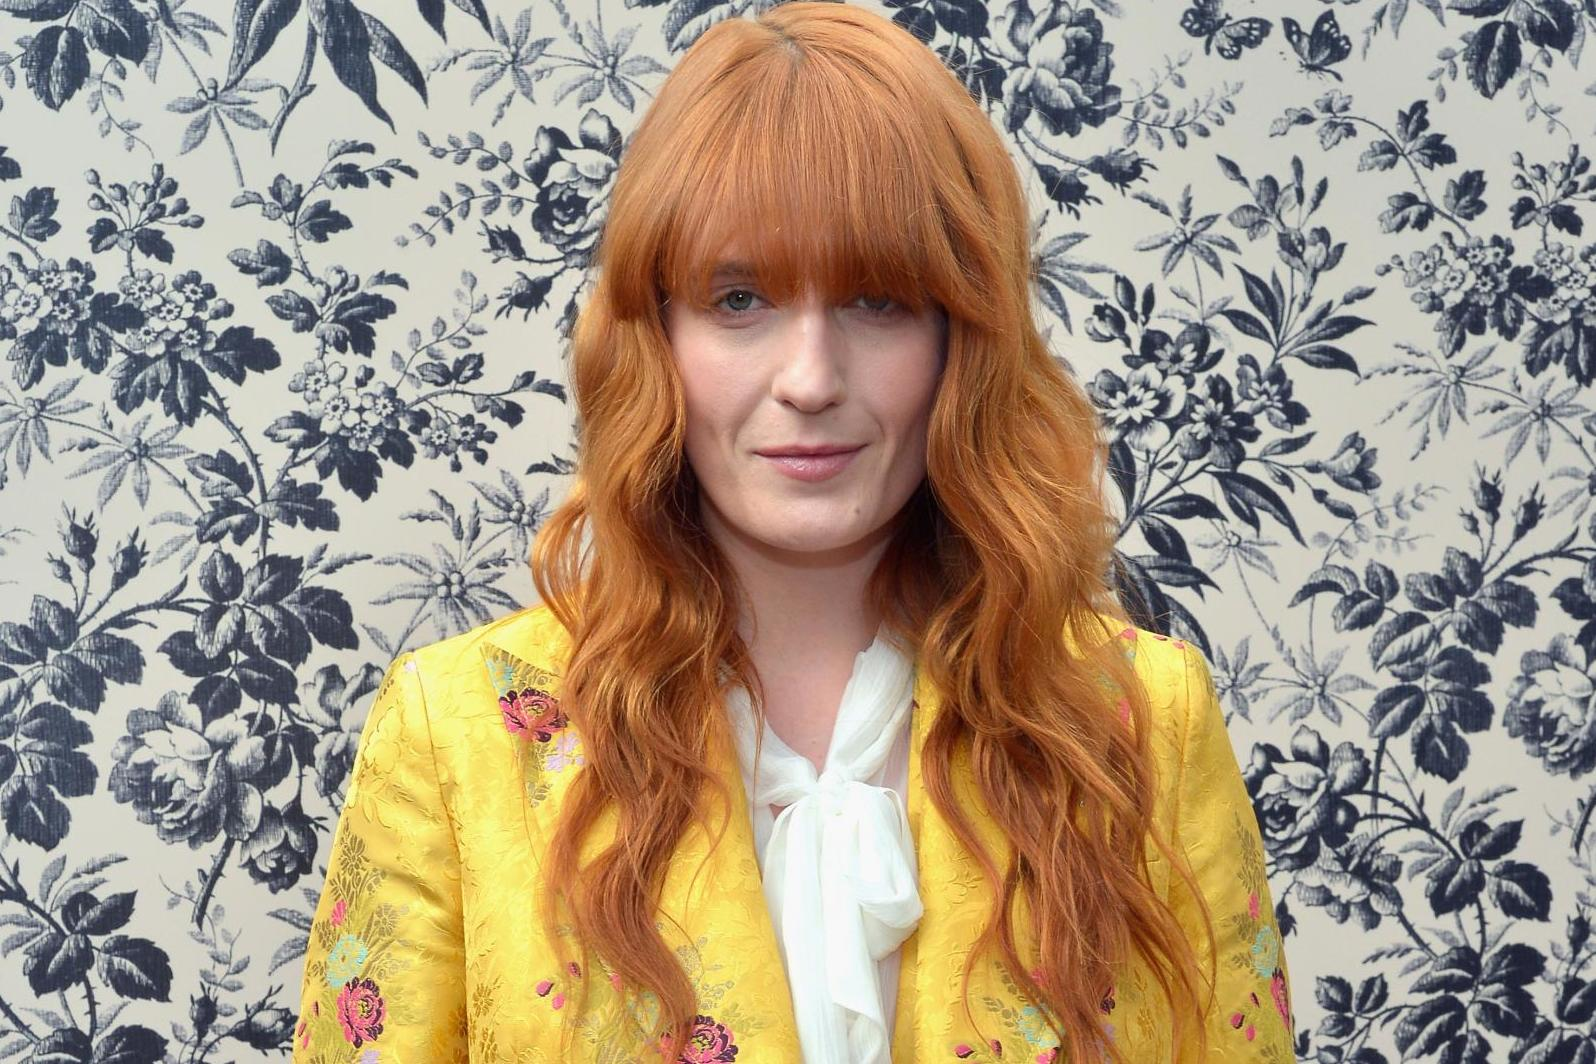 Florence Welch calls social media her 'personalised shame hole' in honest discussion about recovery